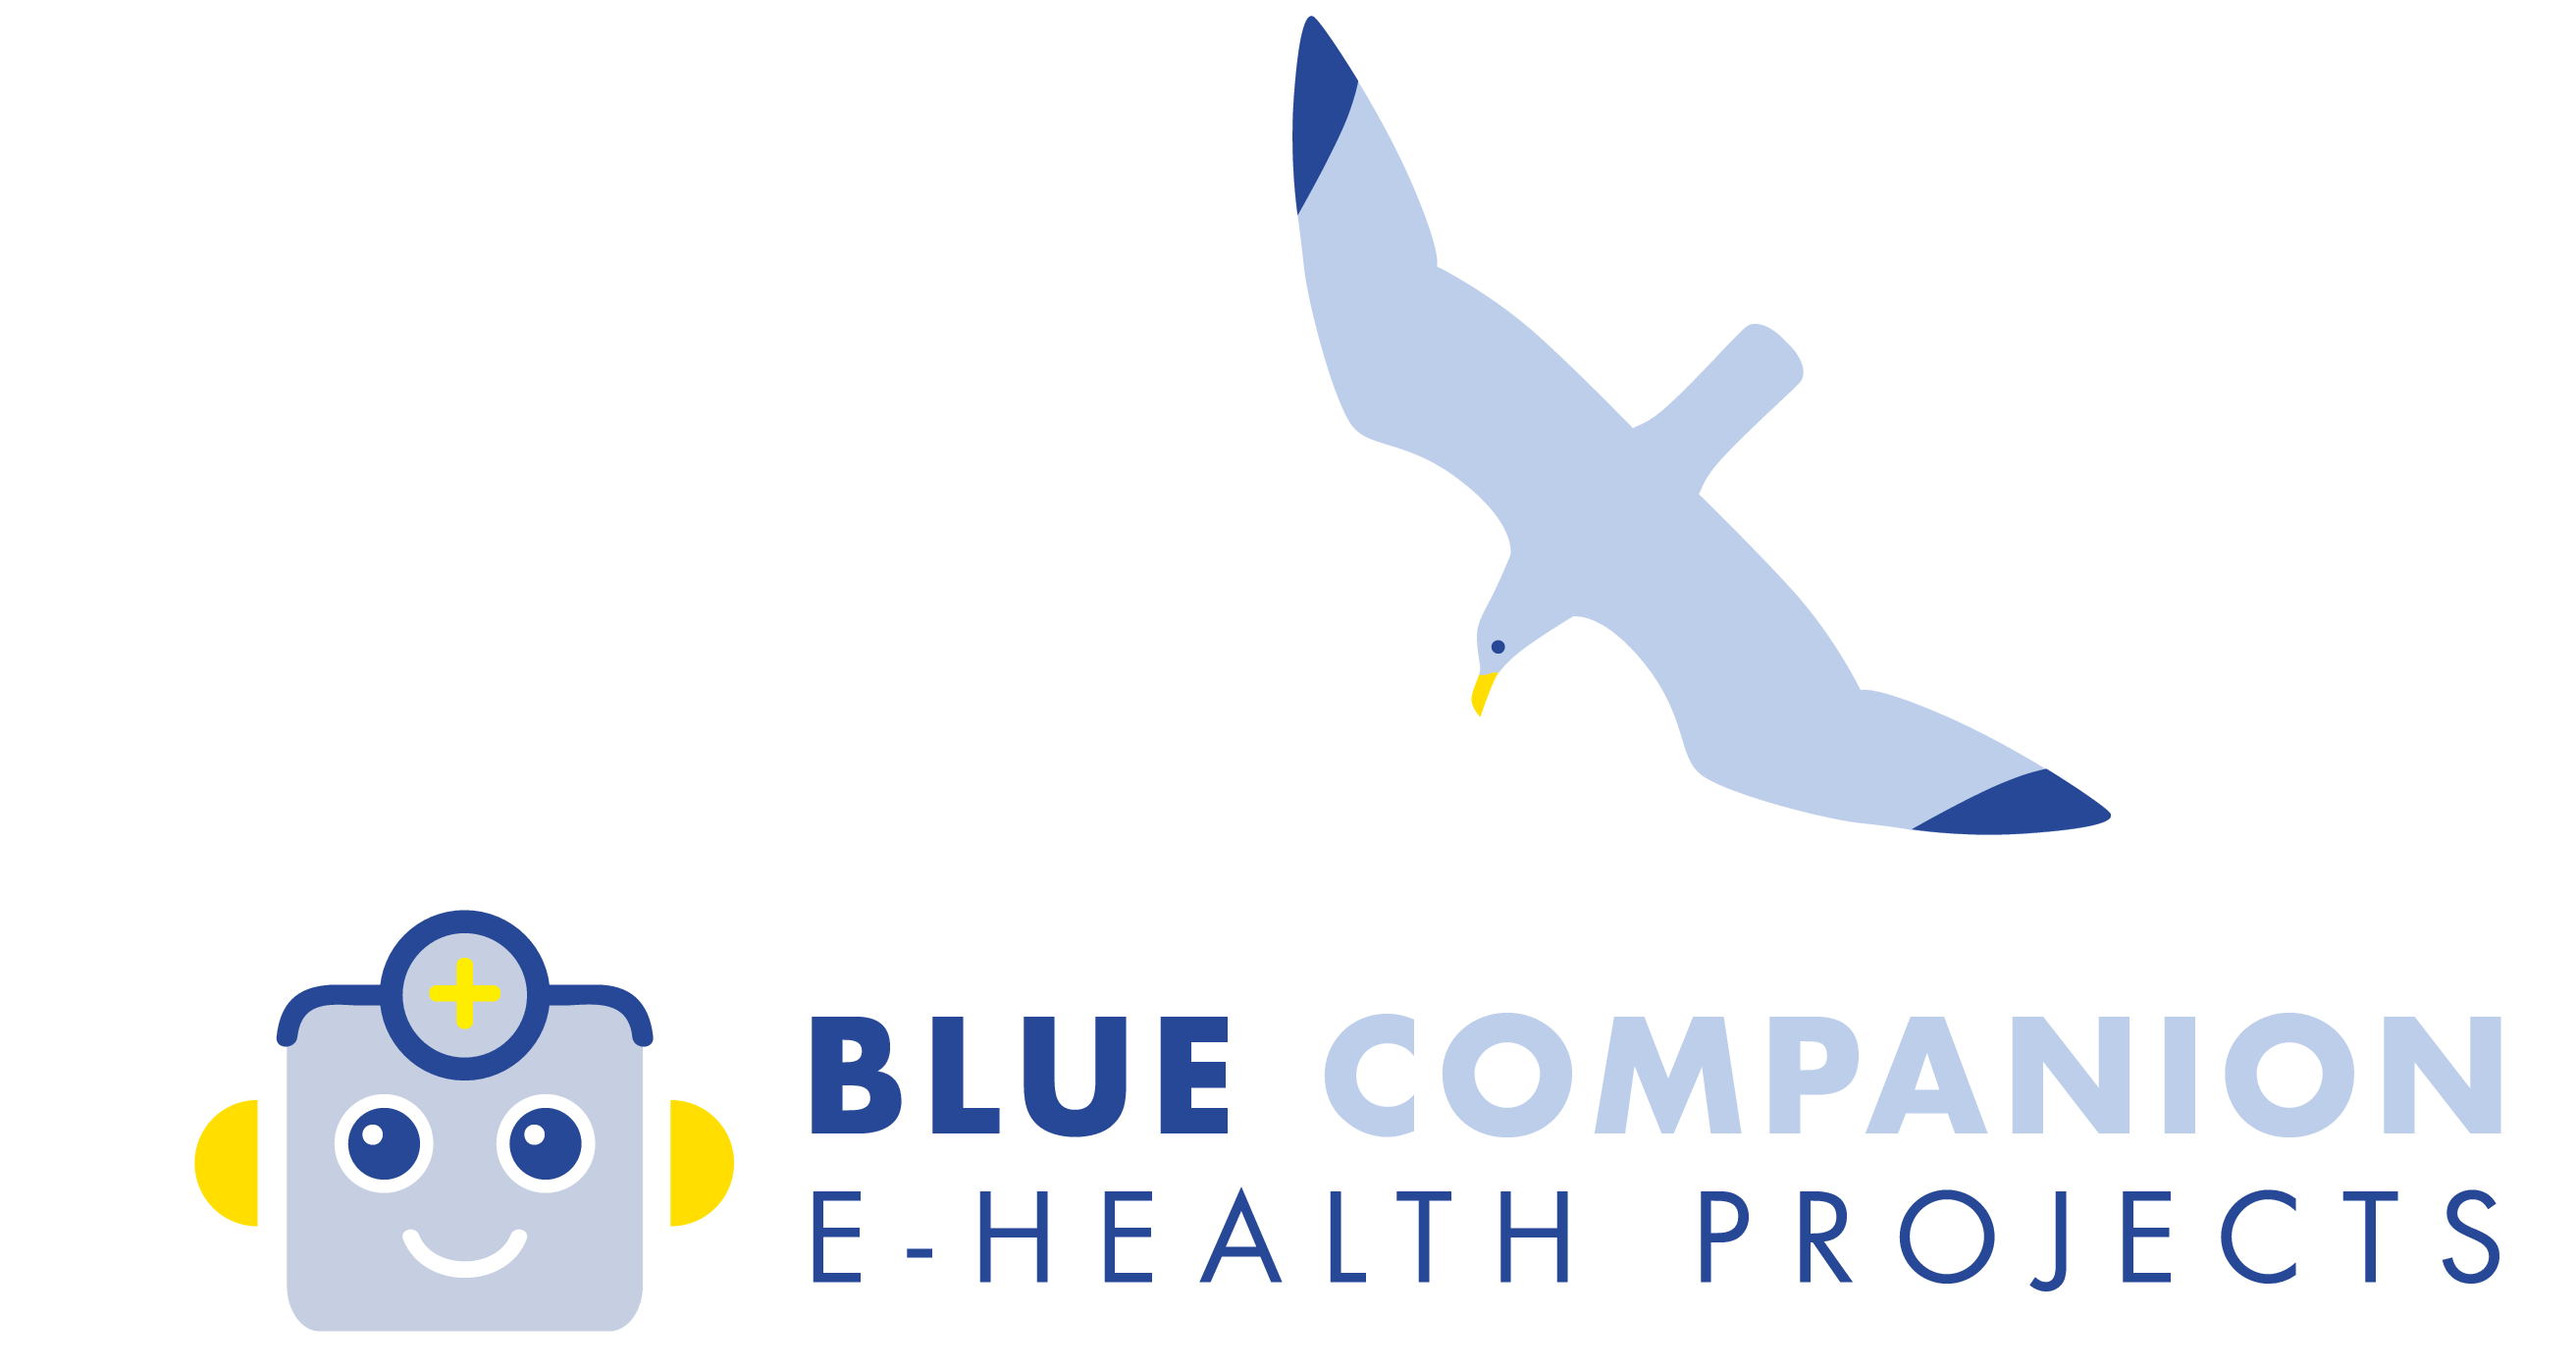 1 BLUECOMPANION INTEGRATED LOGO